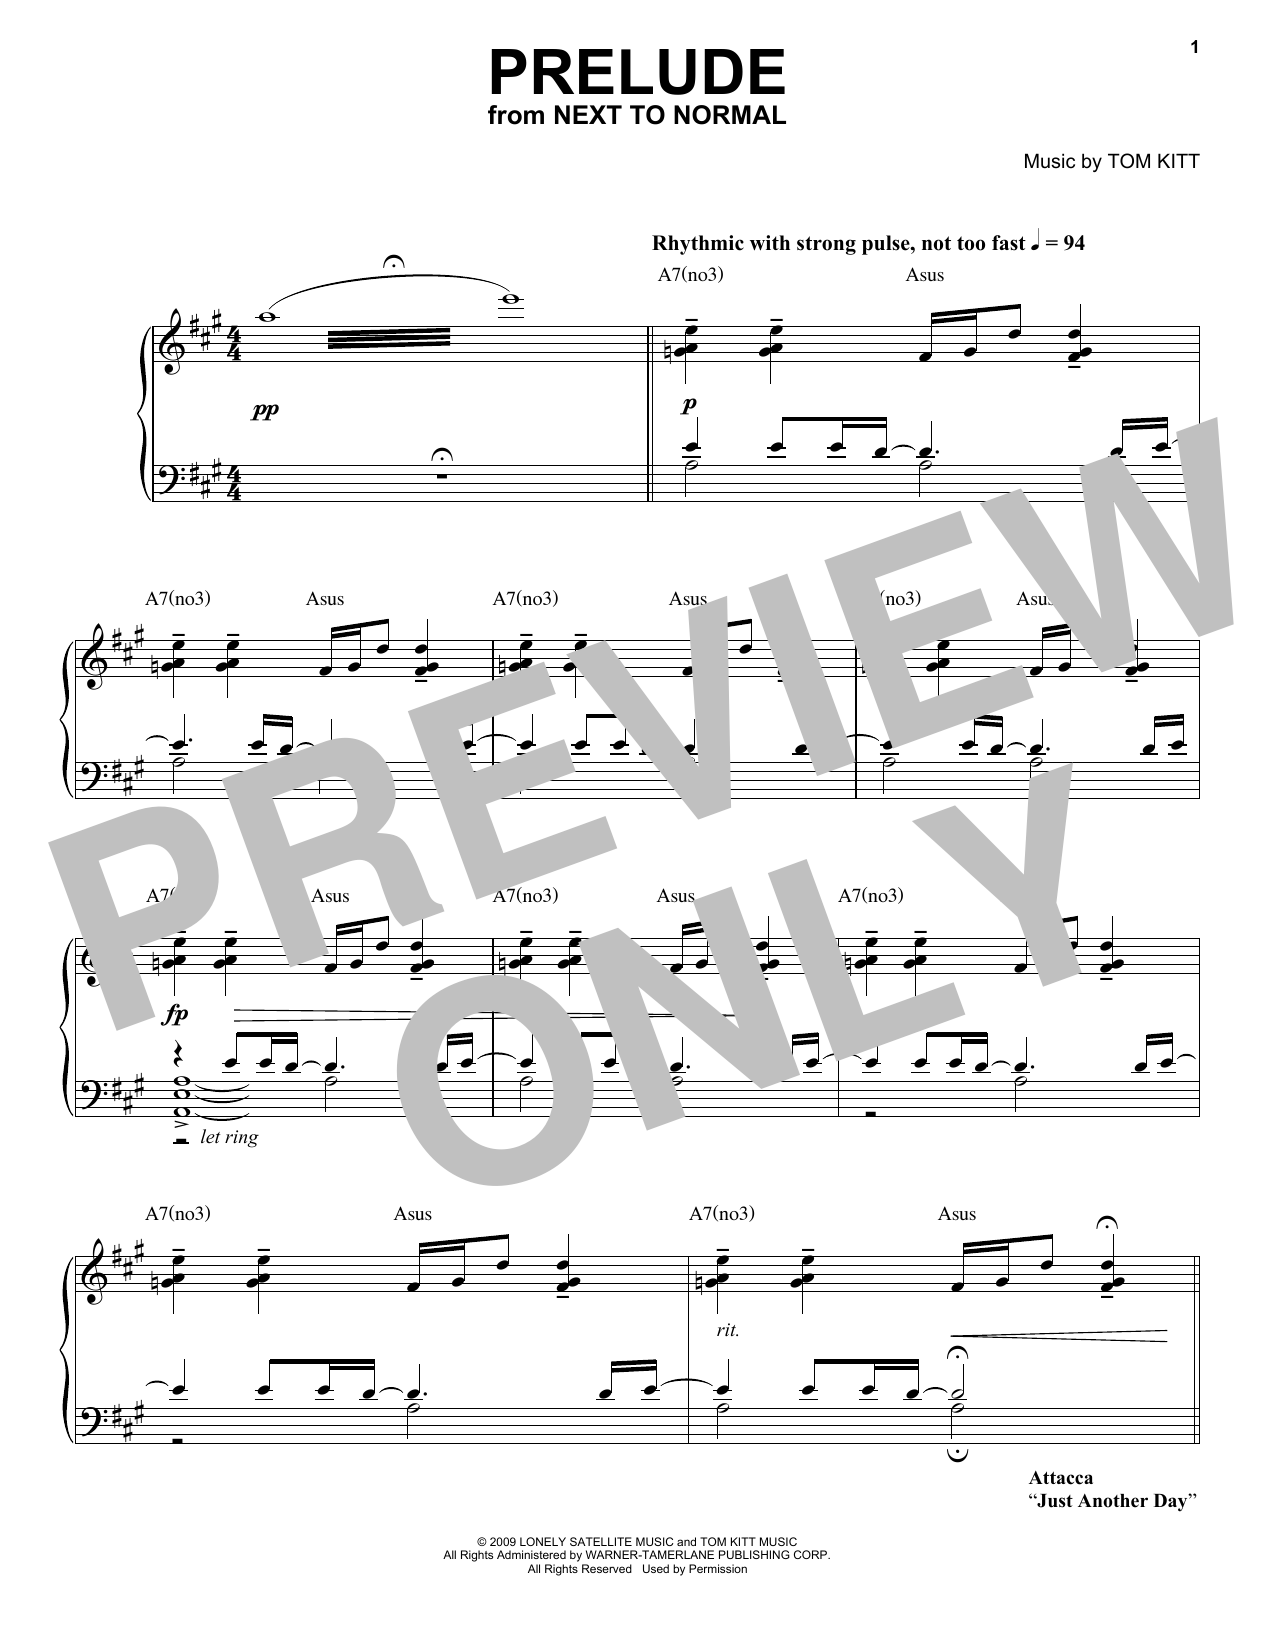 Next to Normal Band Prelude (from Next to Normal) sheet music notes and chords. Download Printable PDF.